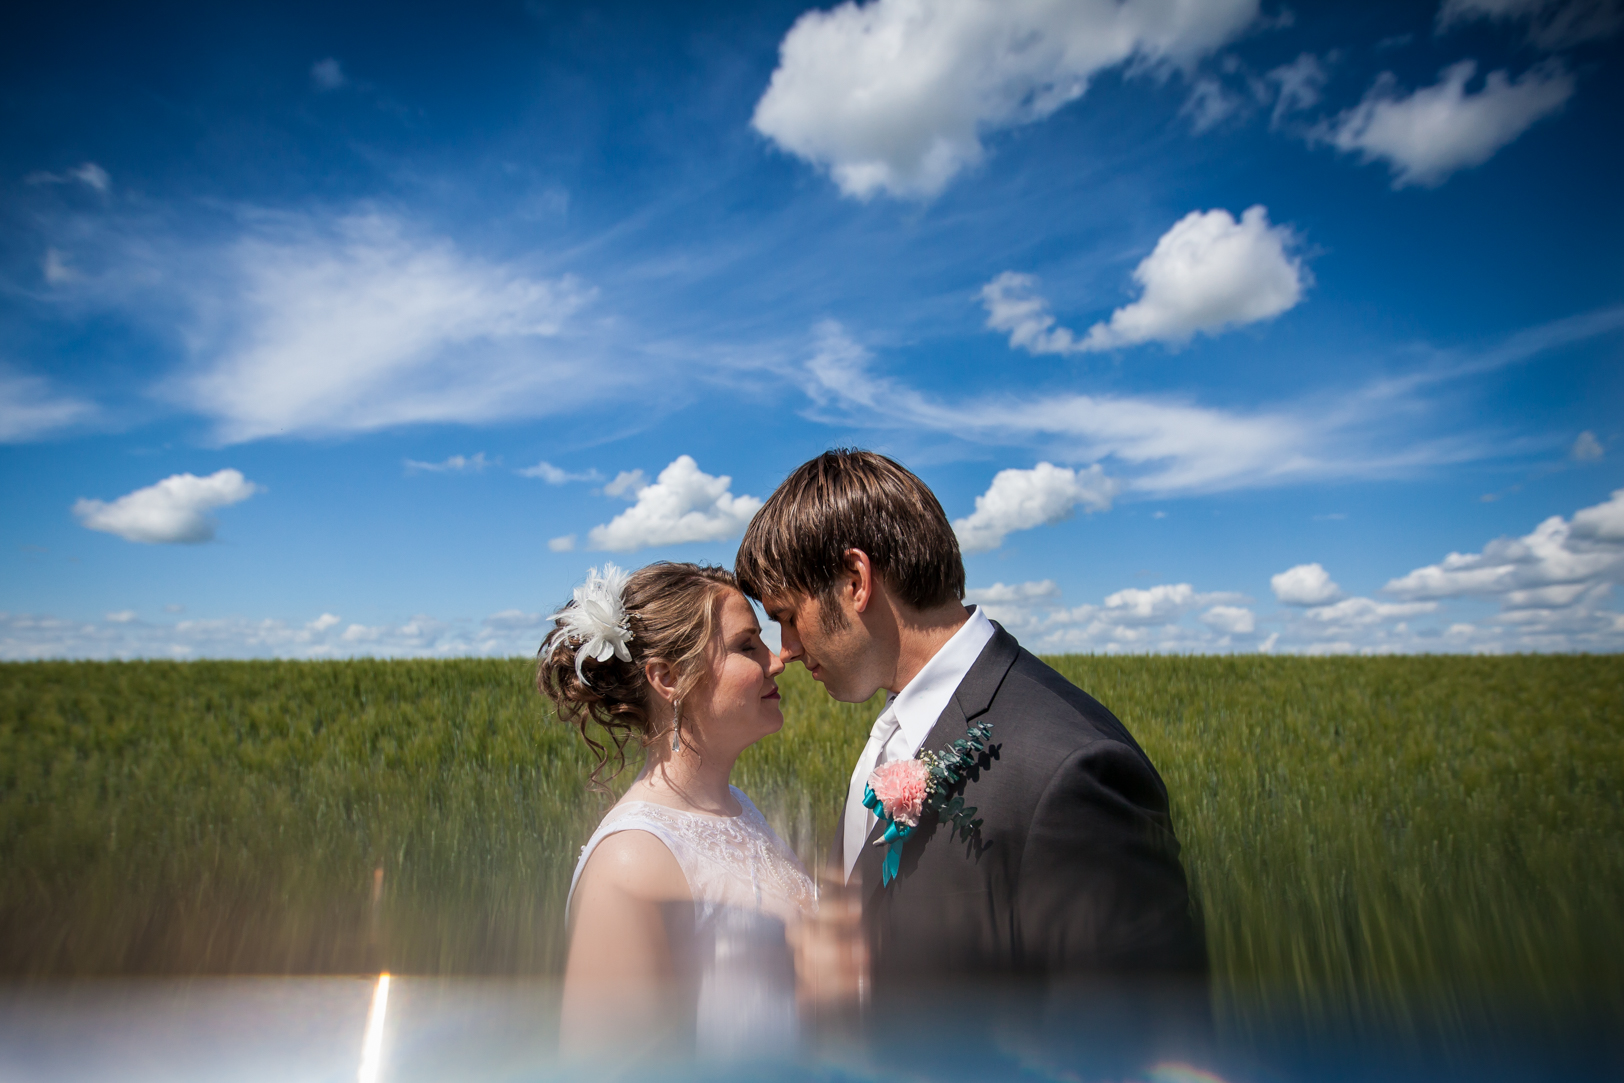 Wedding Photos in Wheat Field